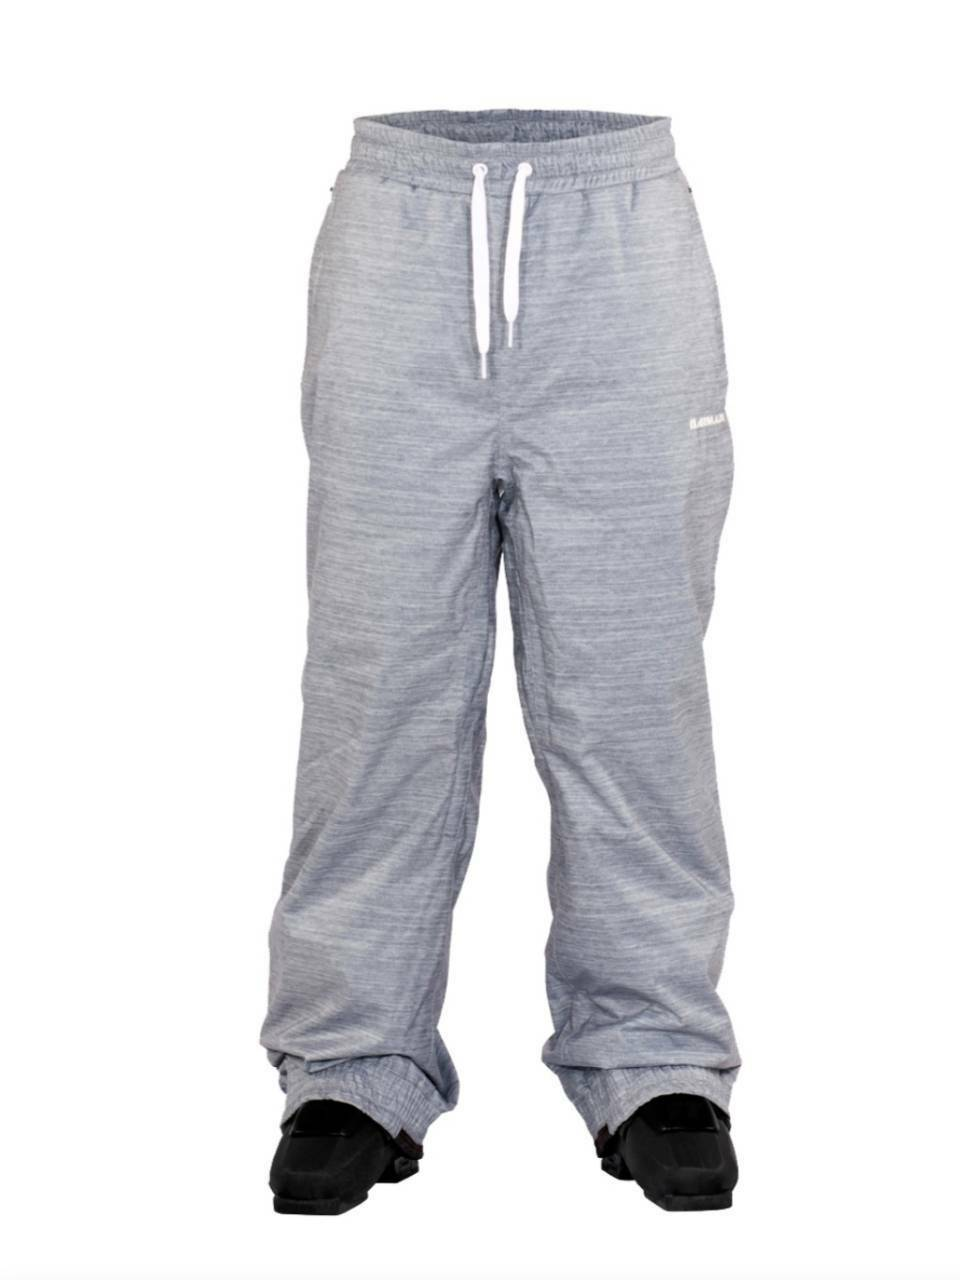 Armada Winter Trousers Salopettes Snowboard Trousers Snow Trousers